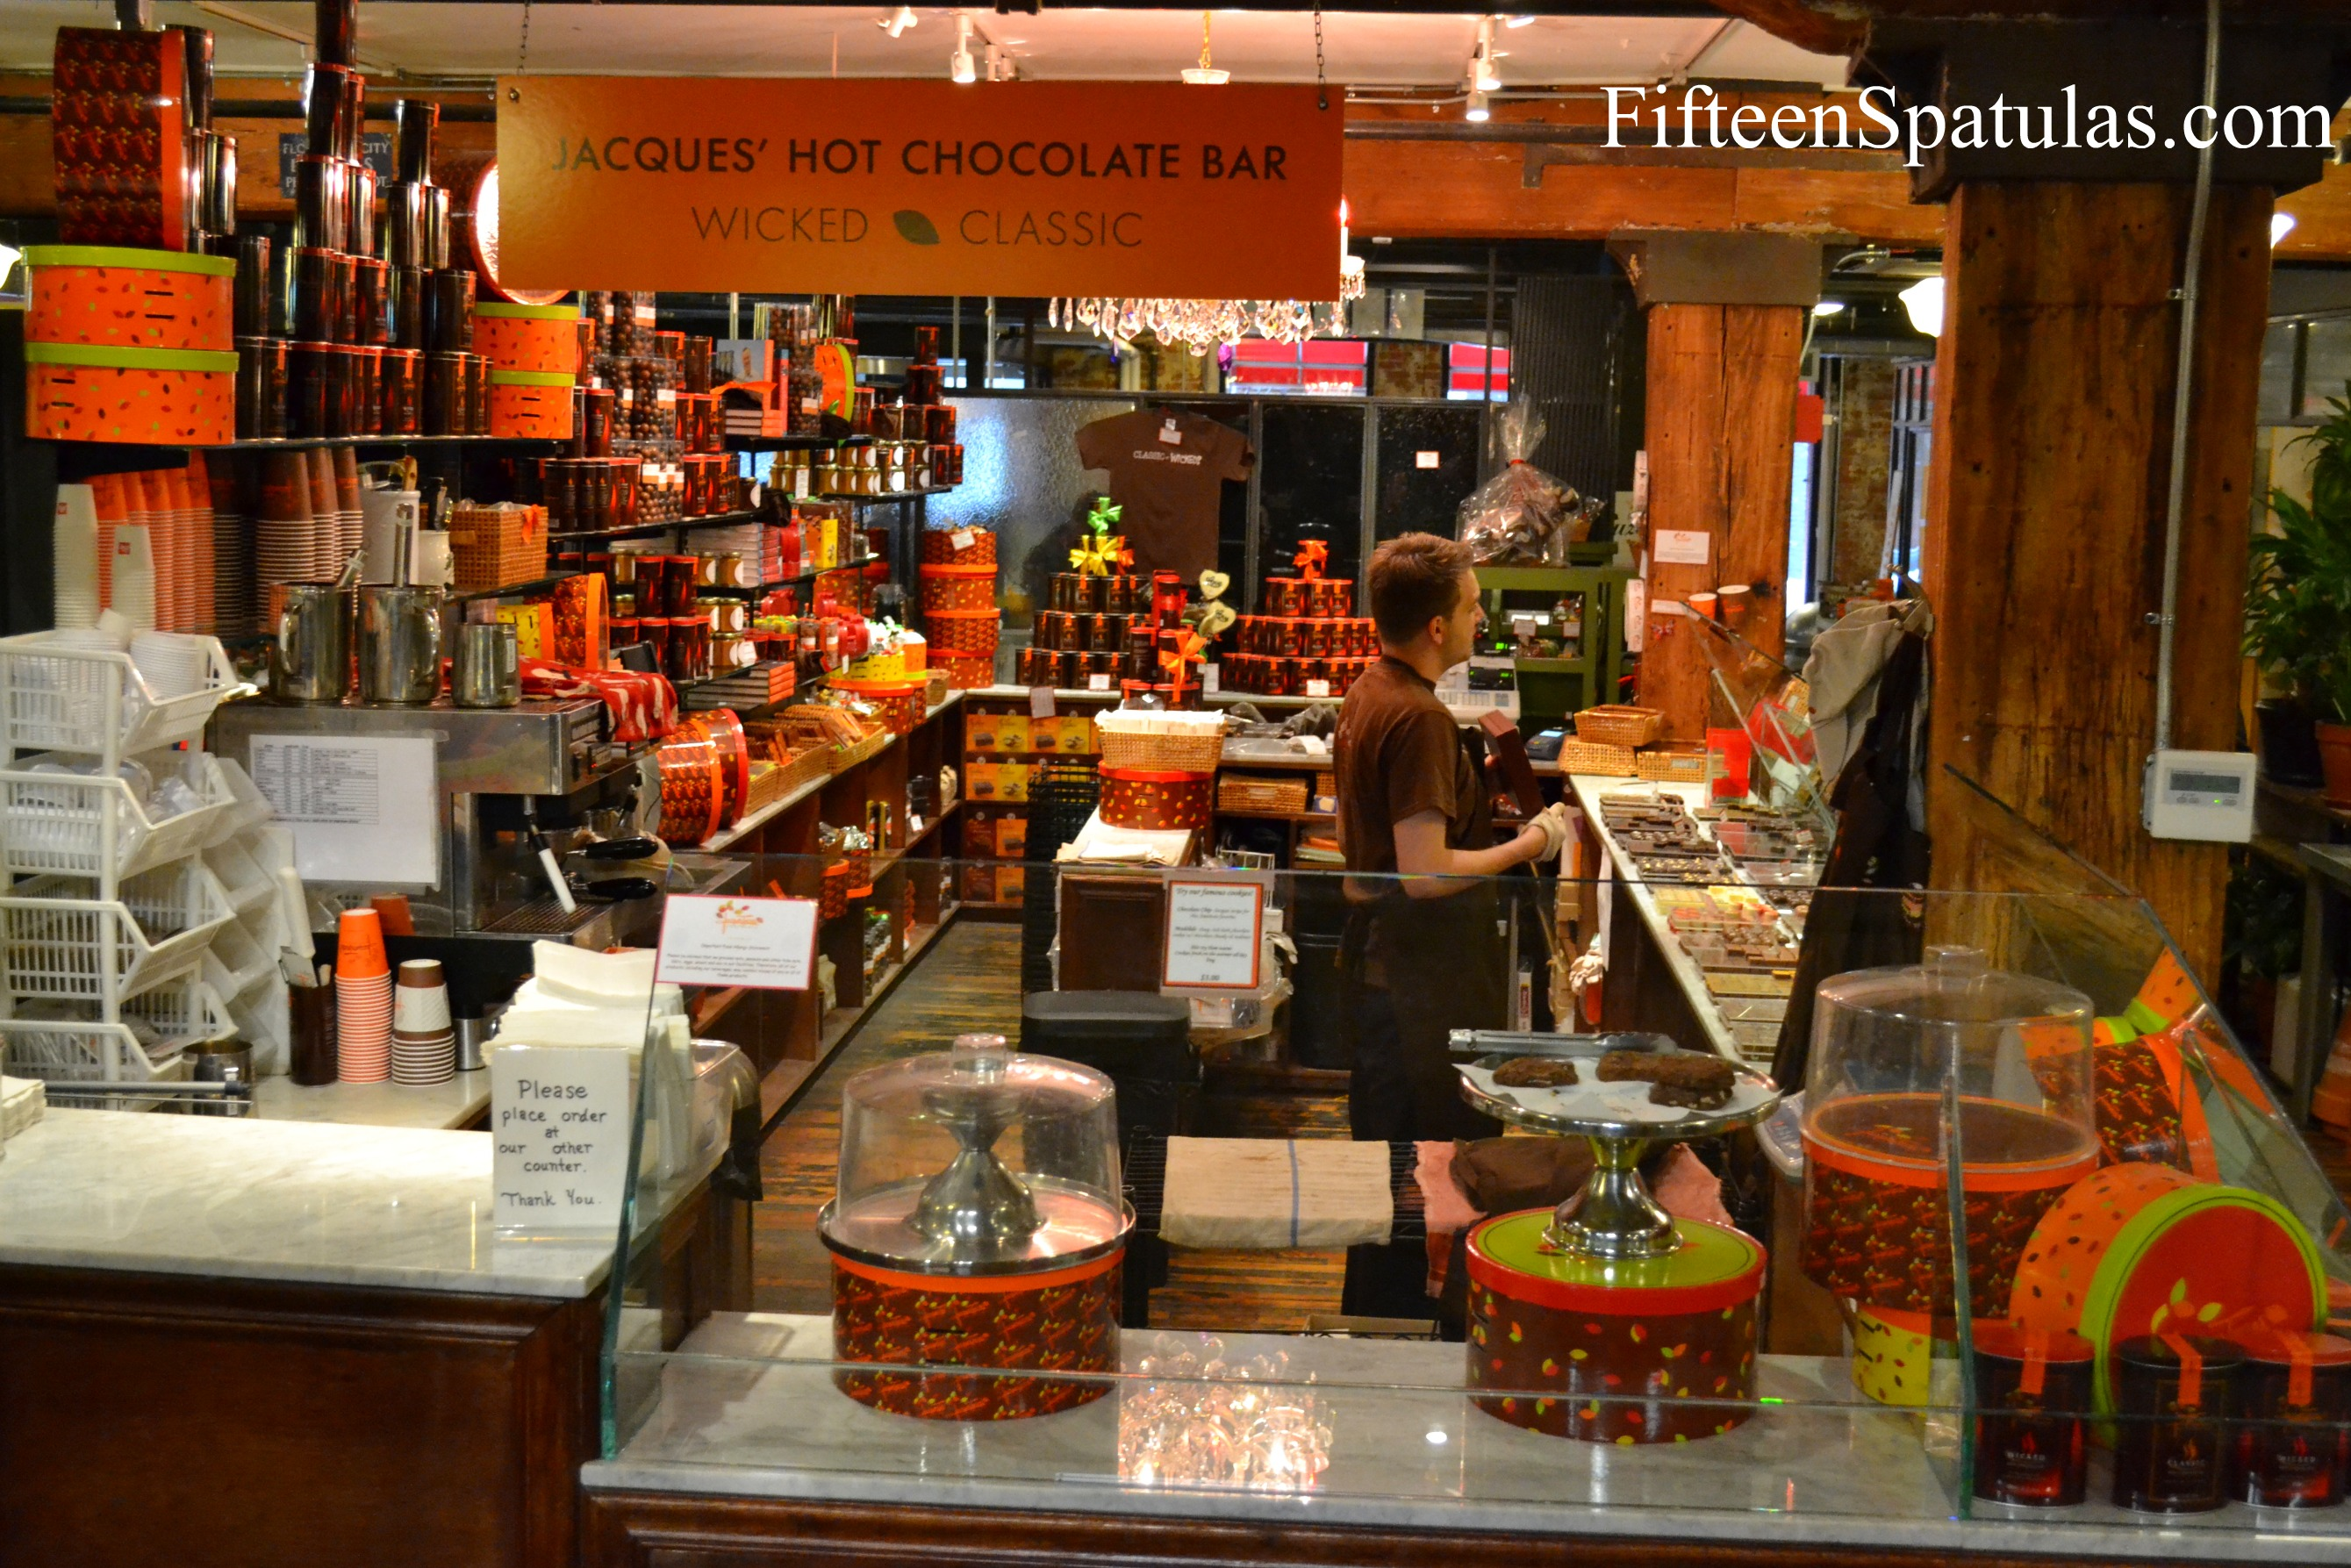 Chelsea Market: Now THIS Is Foodie Heaven (Can I live here ...